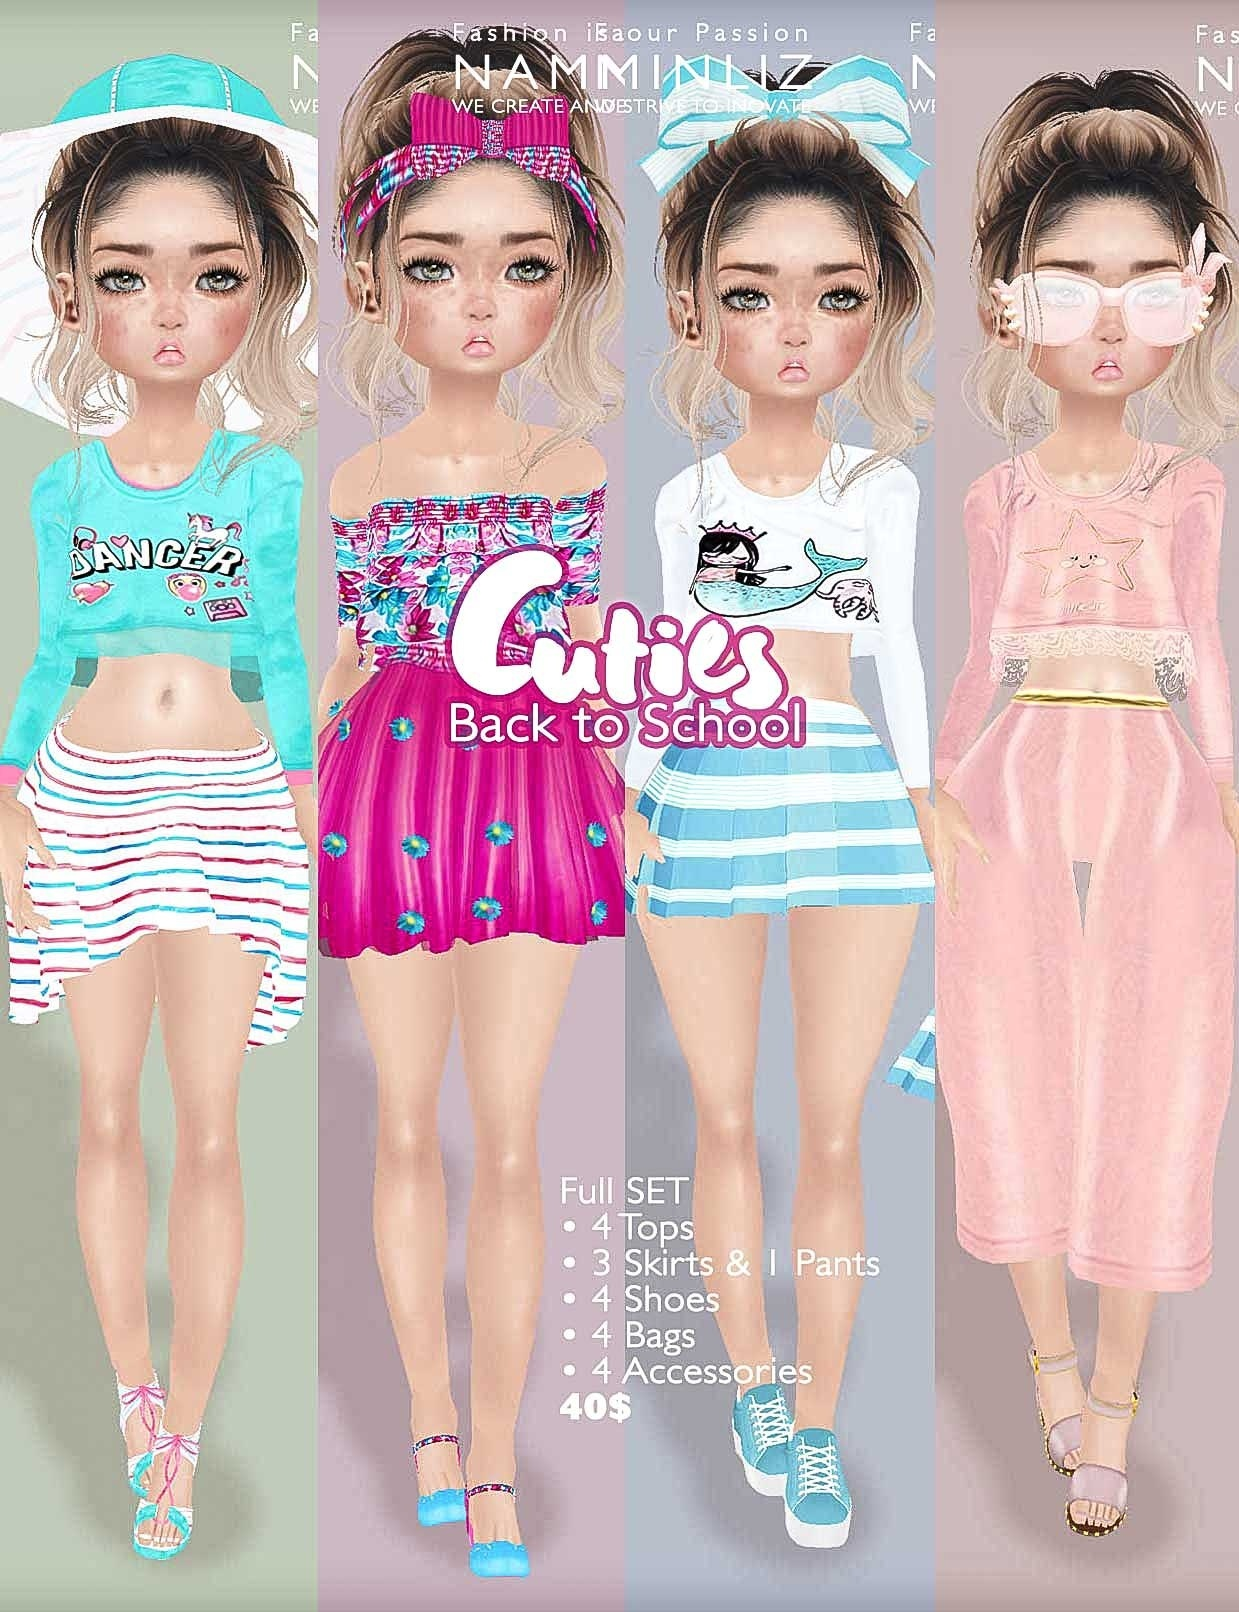 Cuties Back to School Full SET  ( 4 Top + 3 Skirts + 1 Pants + 4 Shoes + 4 Accesories + 4 Bag)